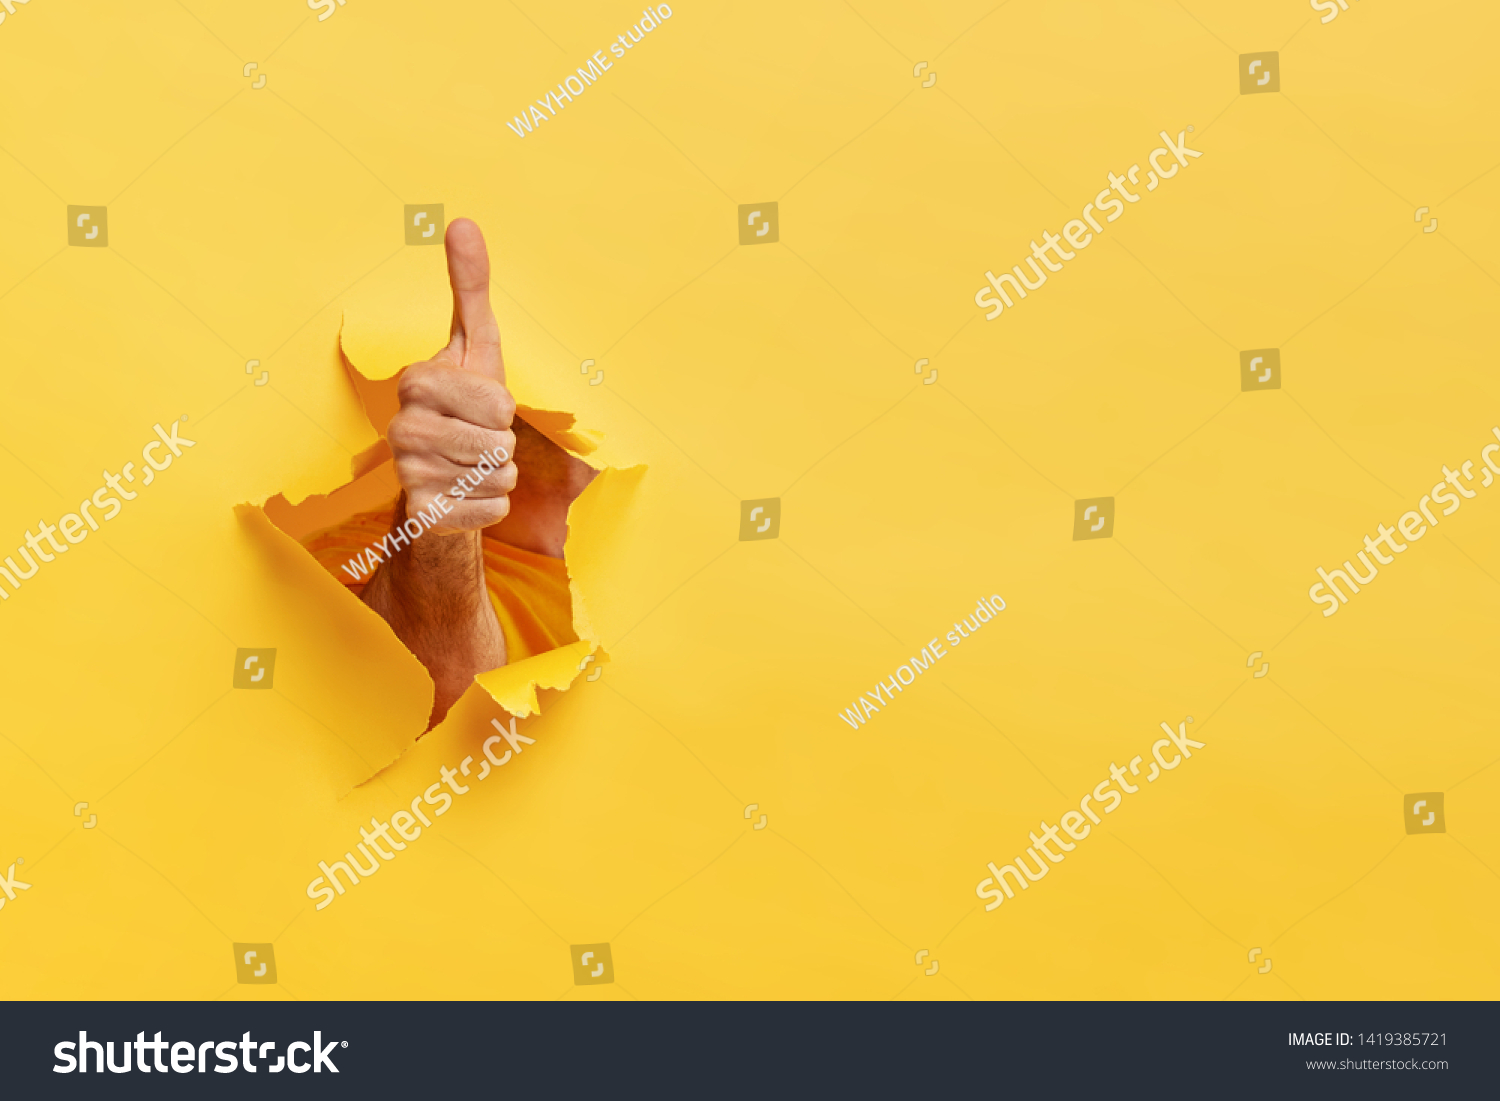 Unrecognizable man shows like gesture through torn yellow wall, keeps thumb up, says you are best, demonstrates approval sign, recommends something. Copy space aside for your advertising content #1419385721